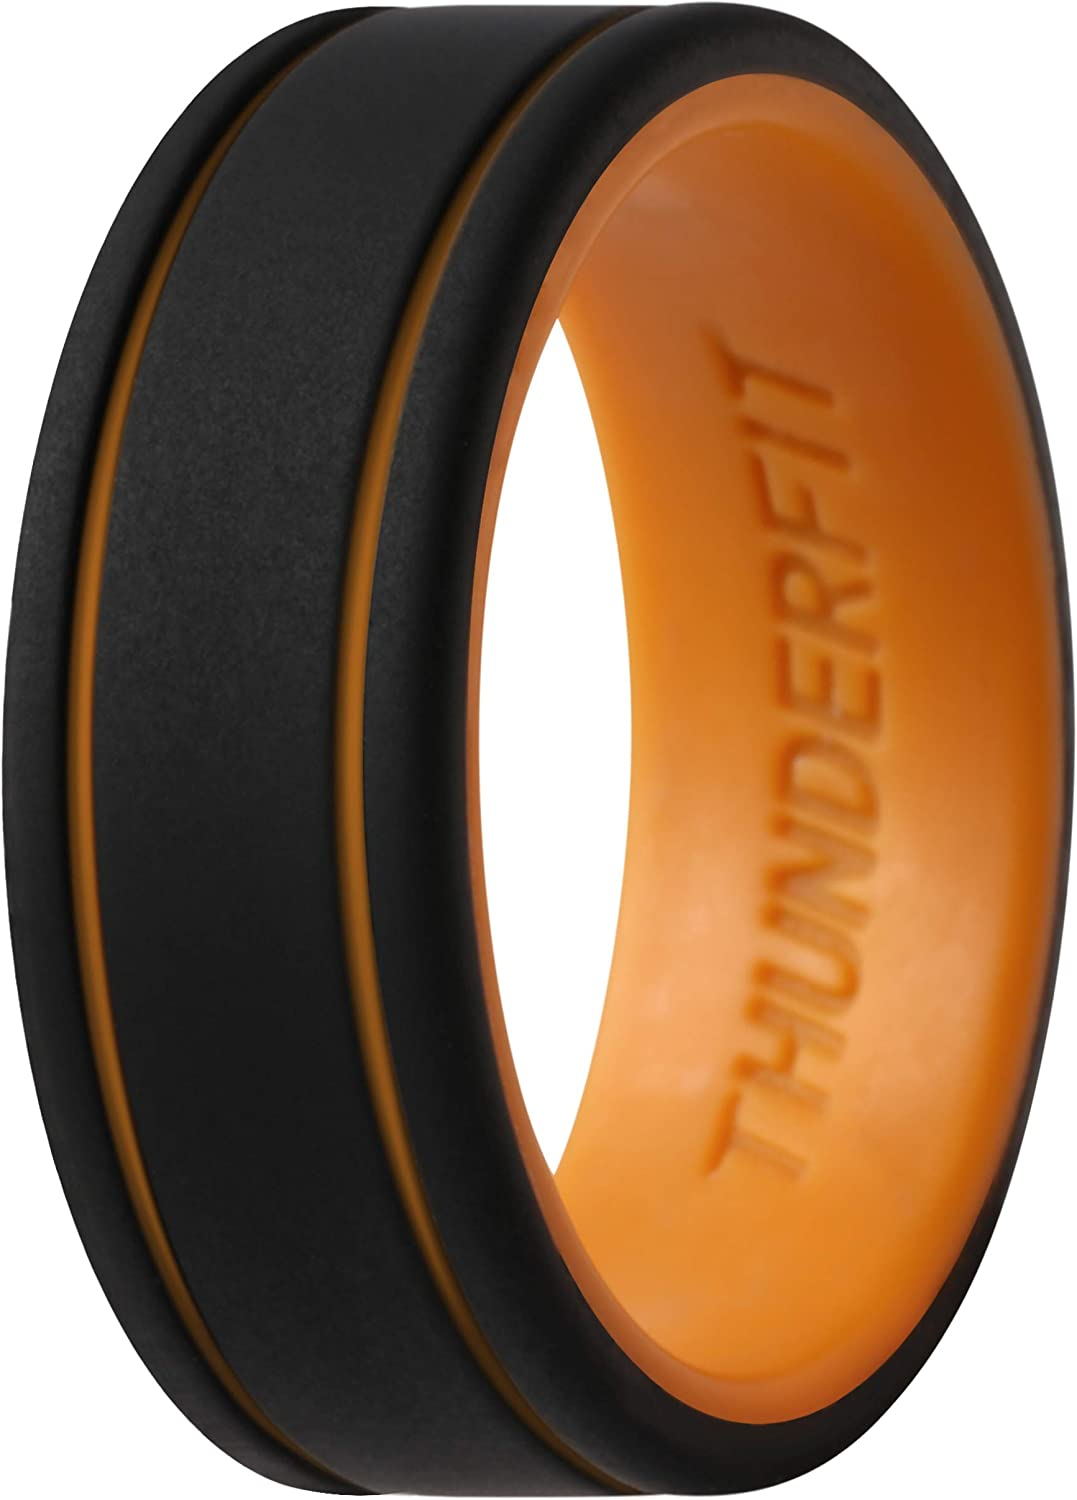 ThunderFit Men Silicone Wedding Rings 2 Layer 7 Rings // 4 Rings // 1 Ring 8mm Width 2mm Thickness Rubber Engagement Bands